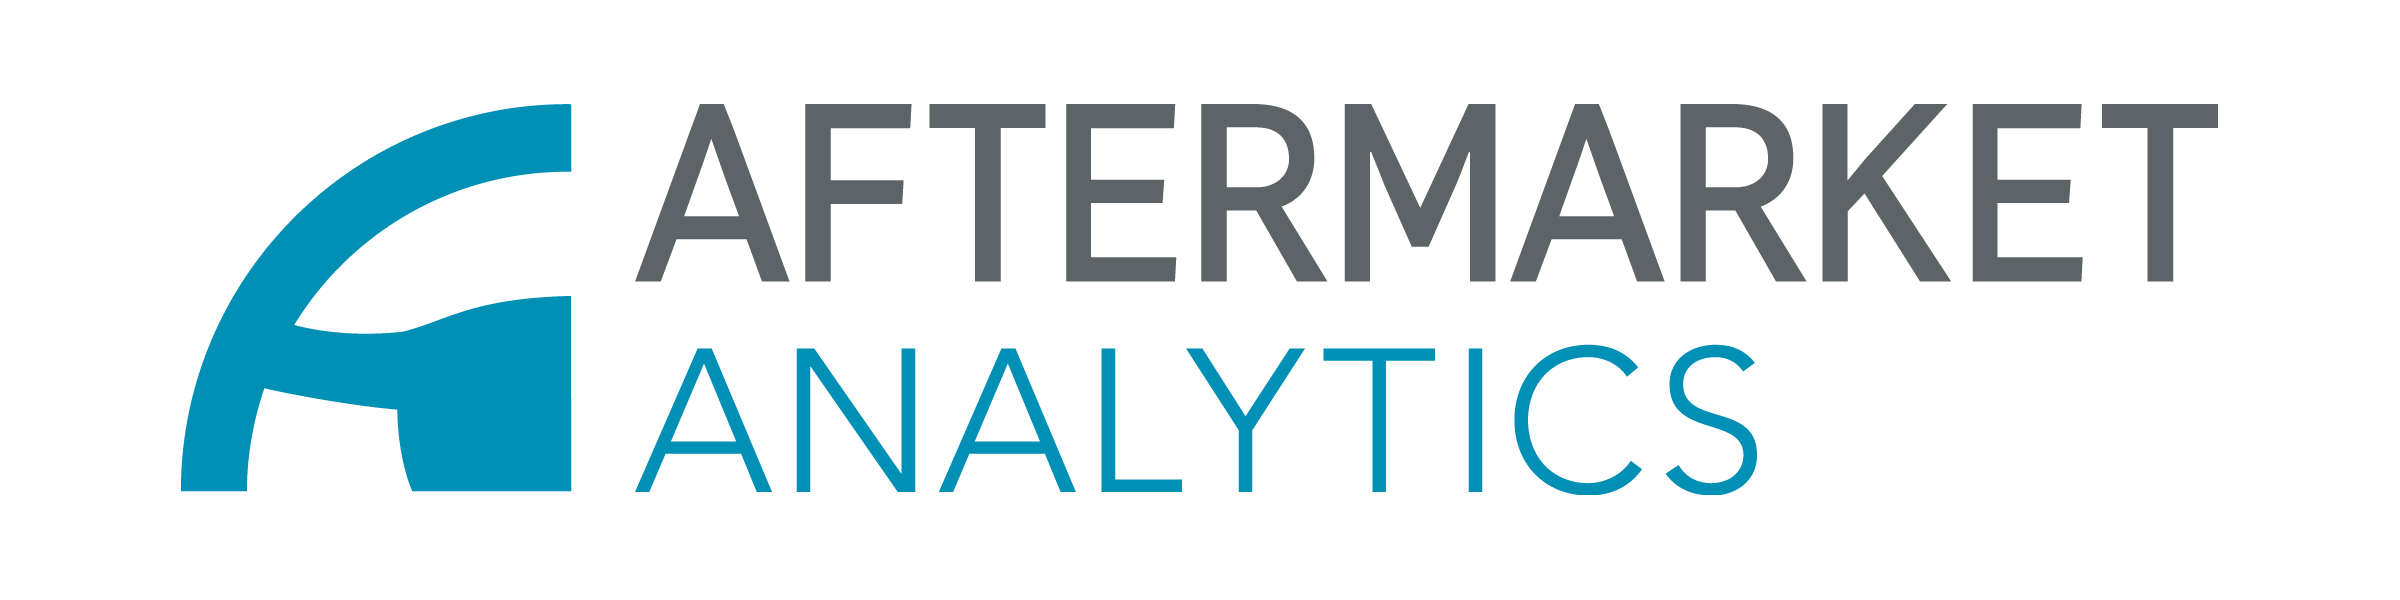 Aftermarket Analytics